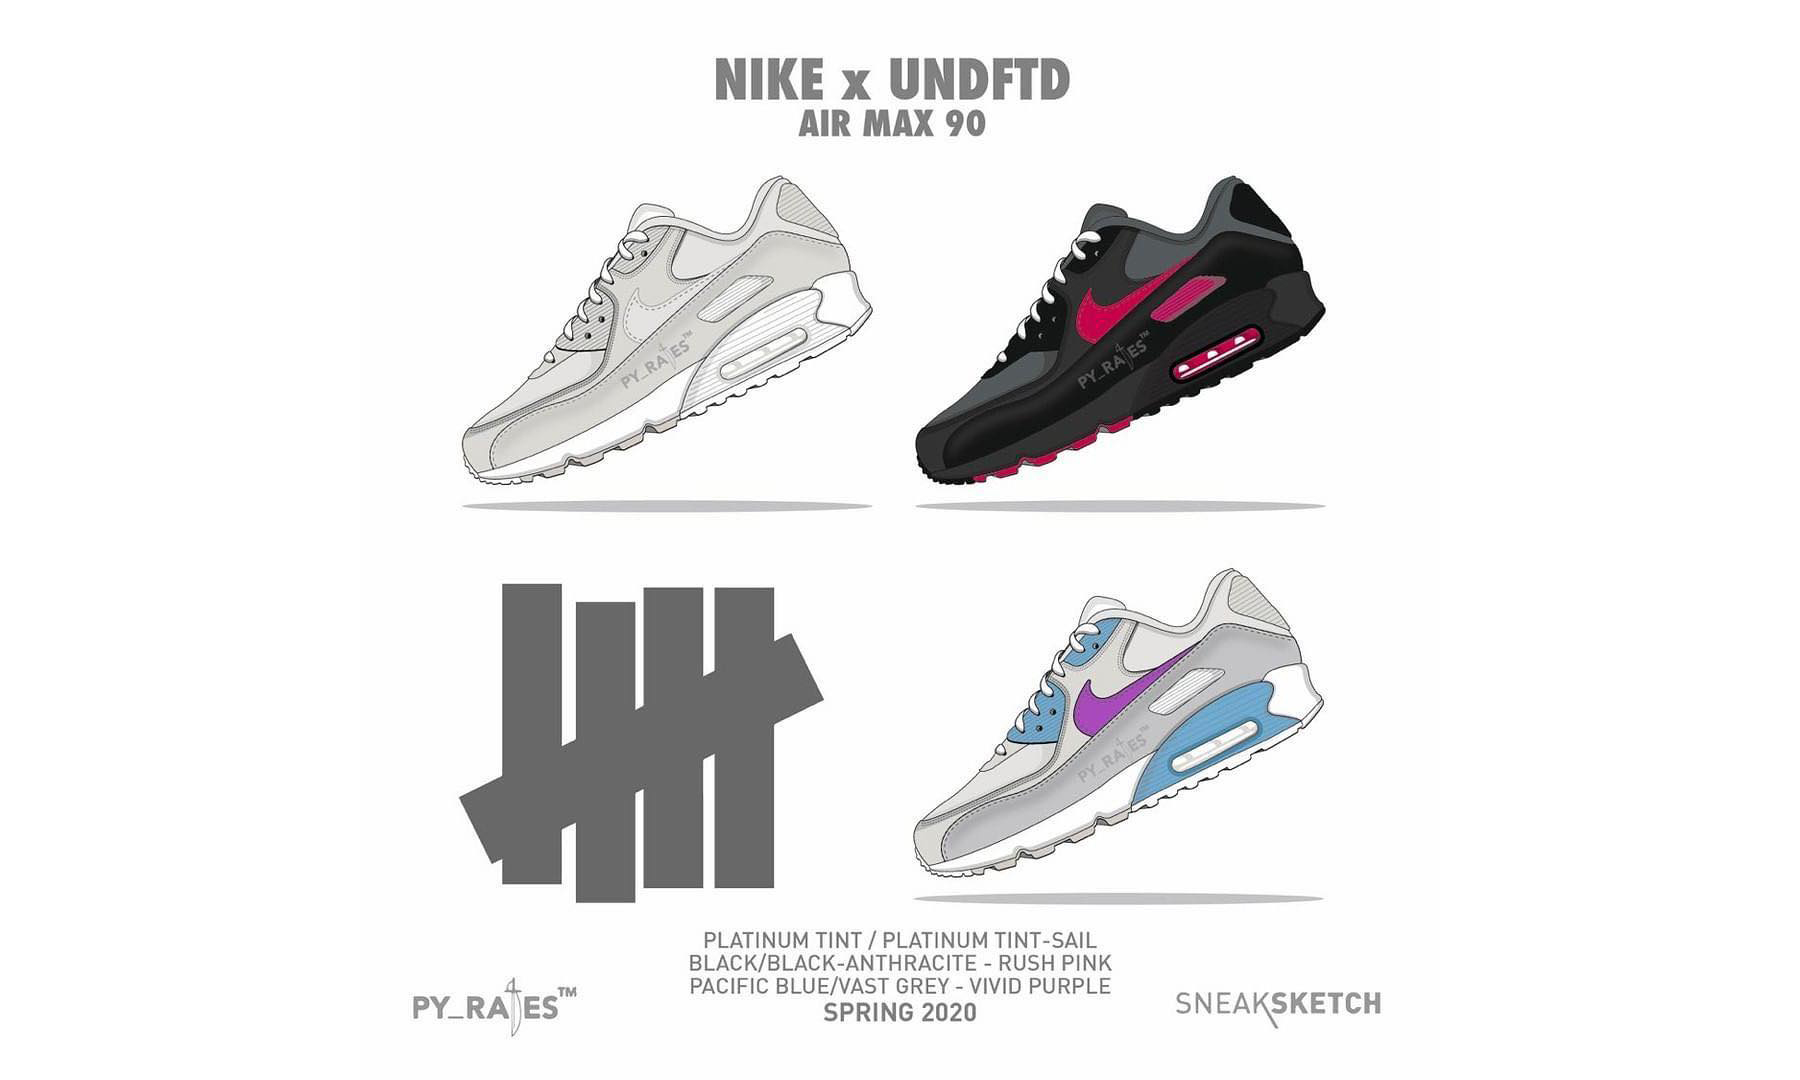 UNDEFEATED x Nike Air Max 90 联名系列发售计划曝光